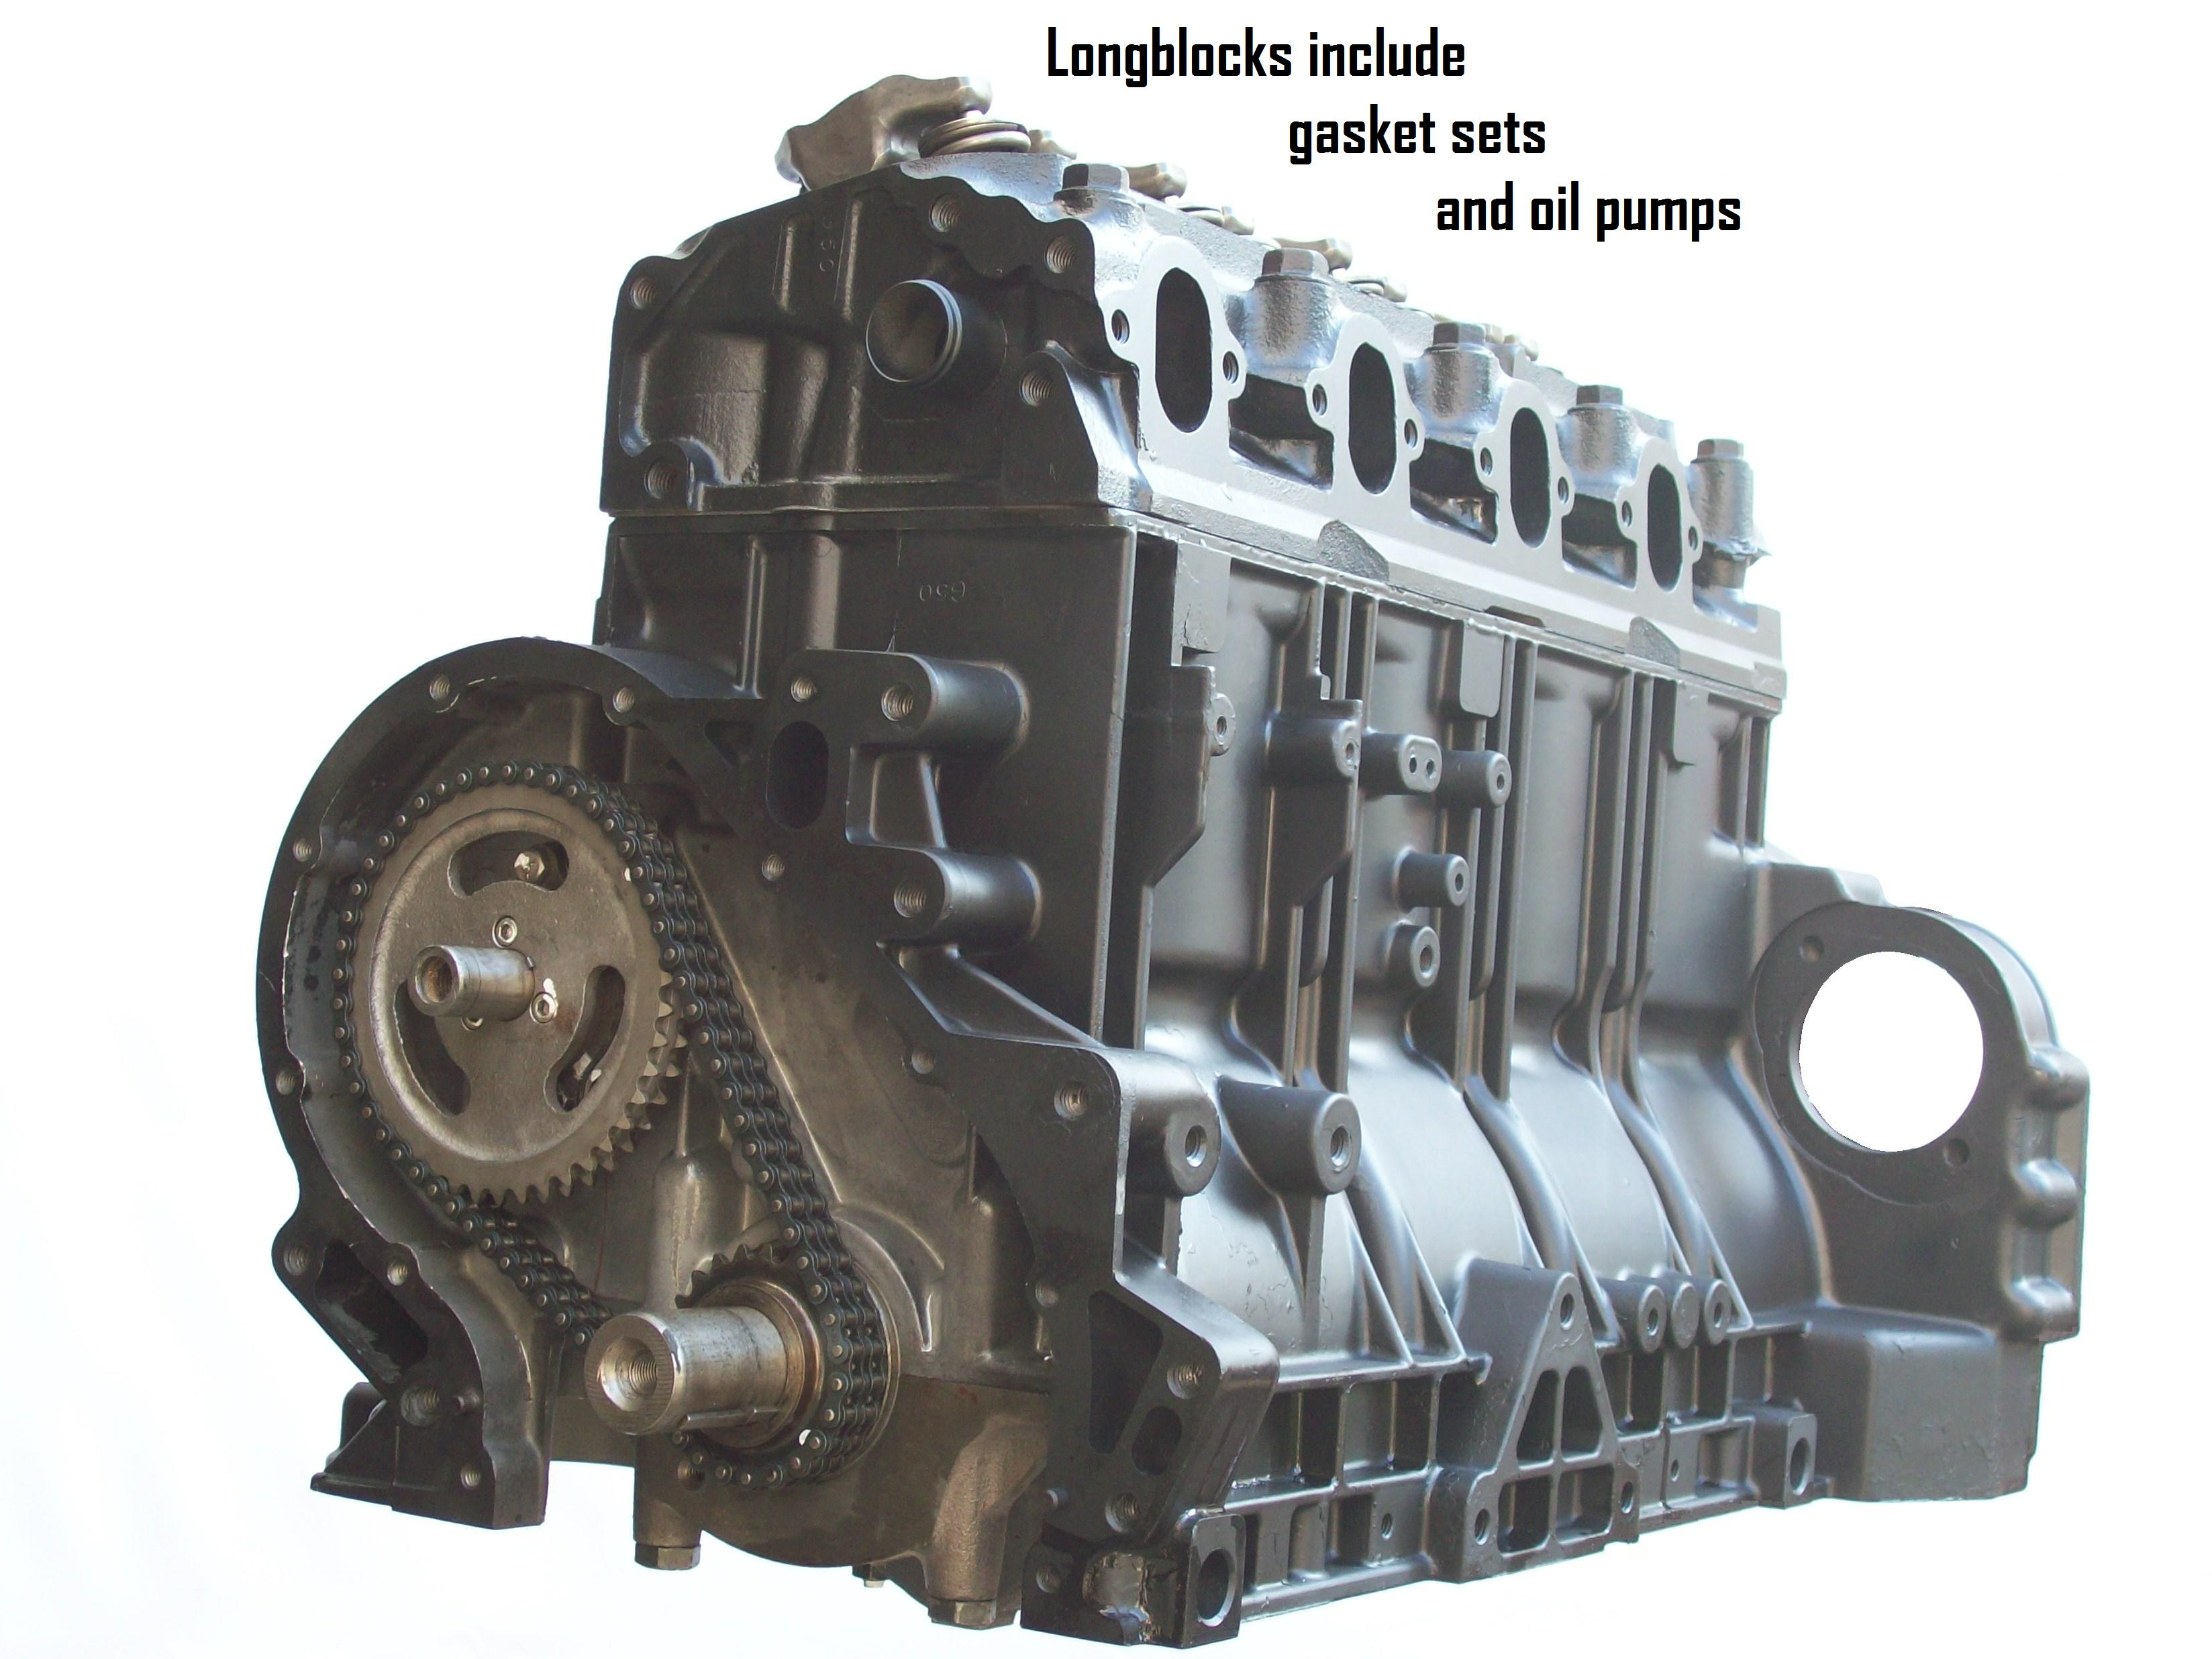 3.7L Mercruiser marine remanufactured engines inboard Mercruiser 3.7L 1990 Wiring Diagram at mifinder.co